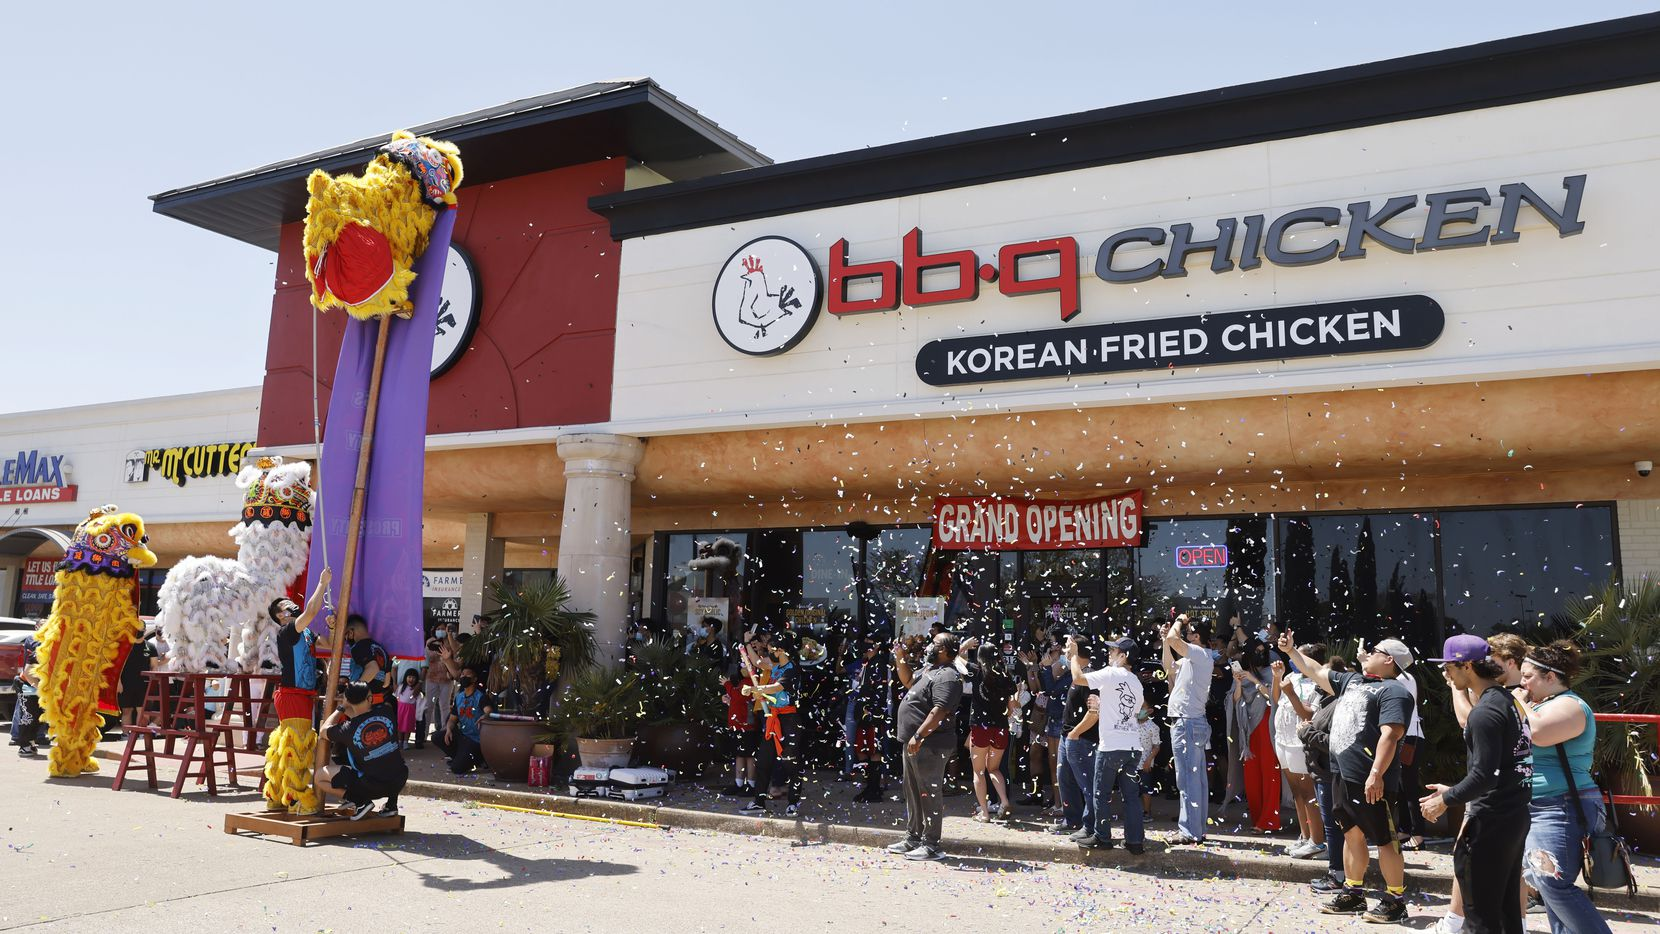 Confetti flies through the air during a grand opening event at BB.Q Chicken in Richardson.